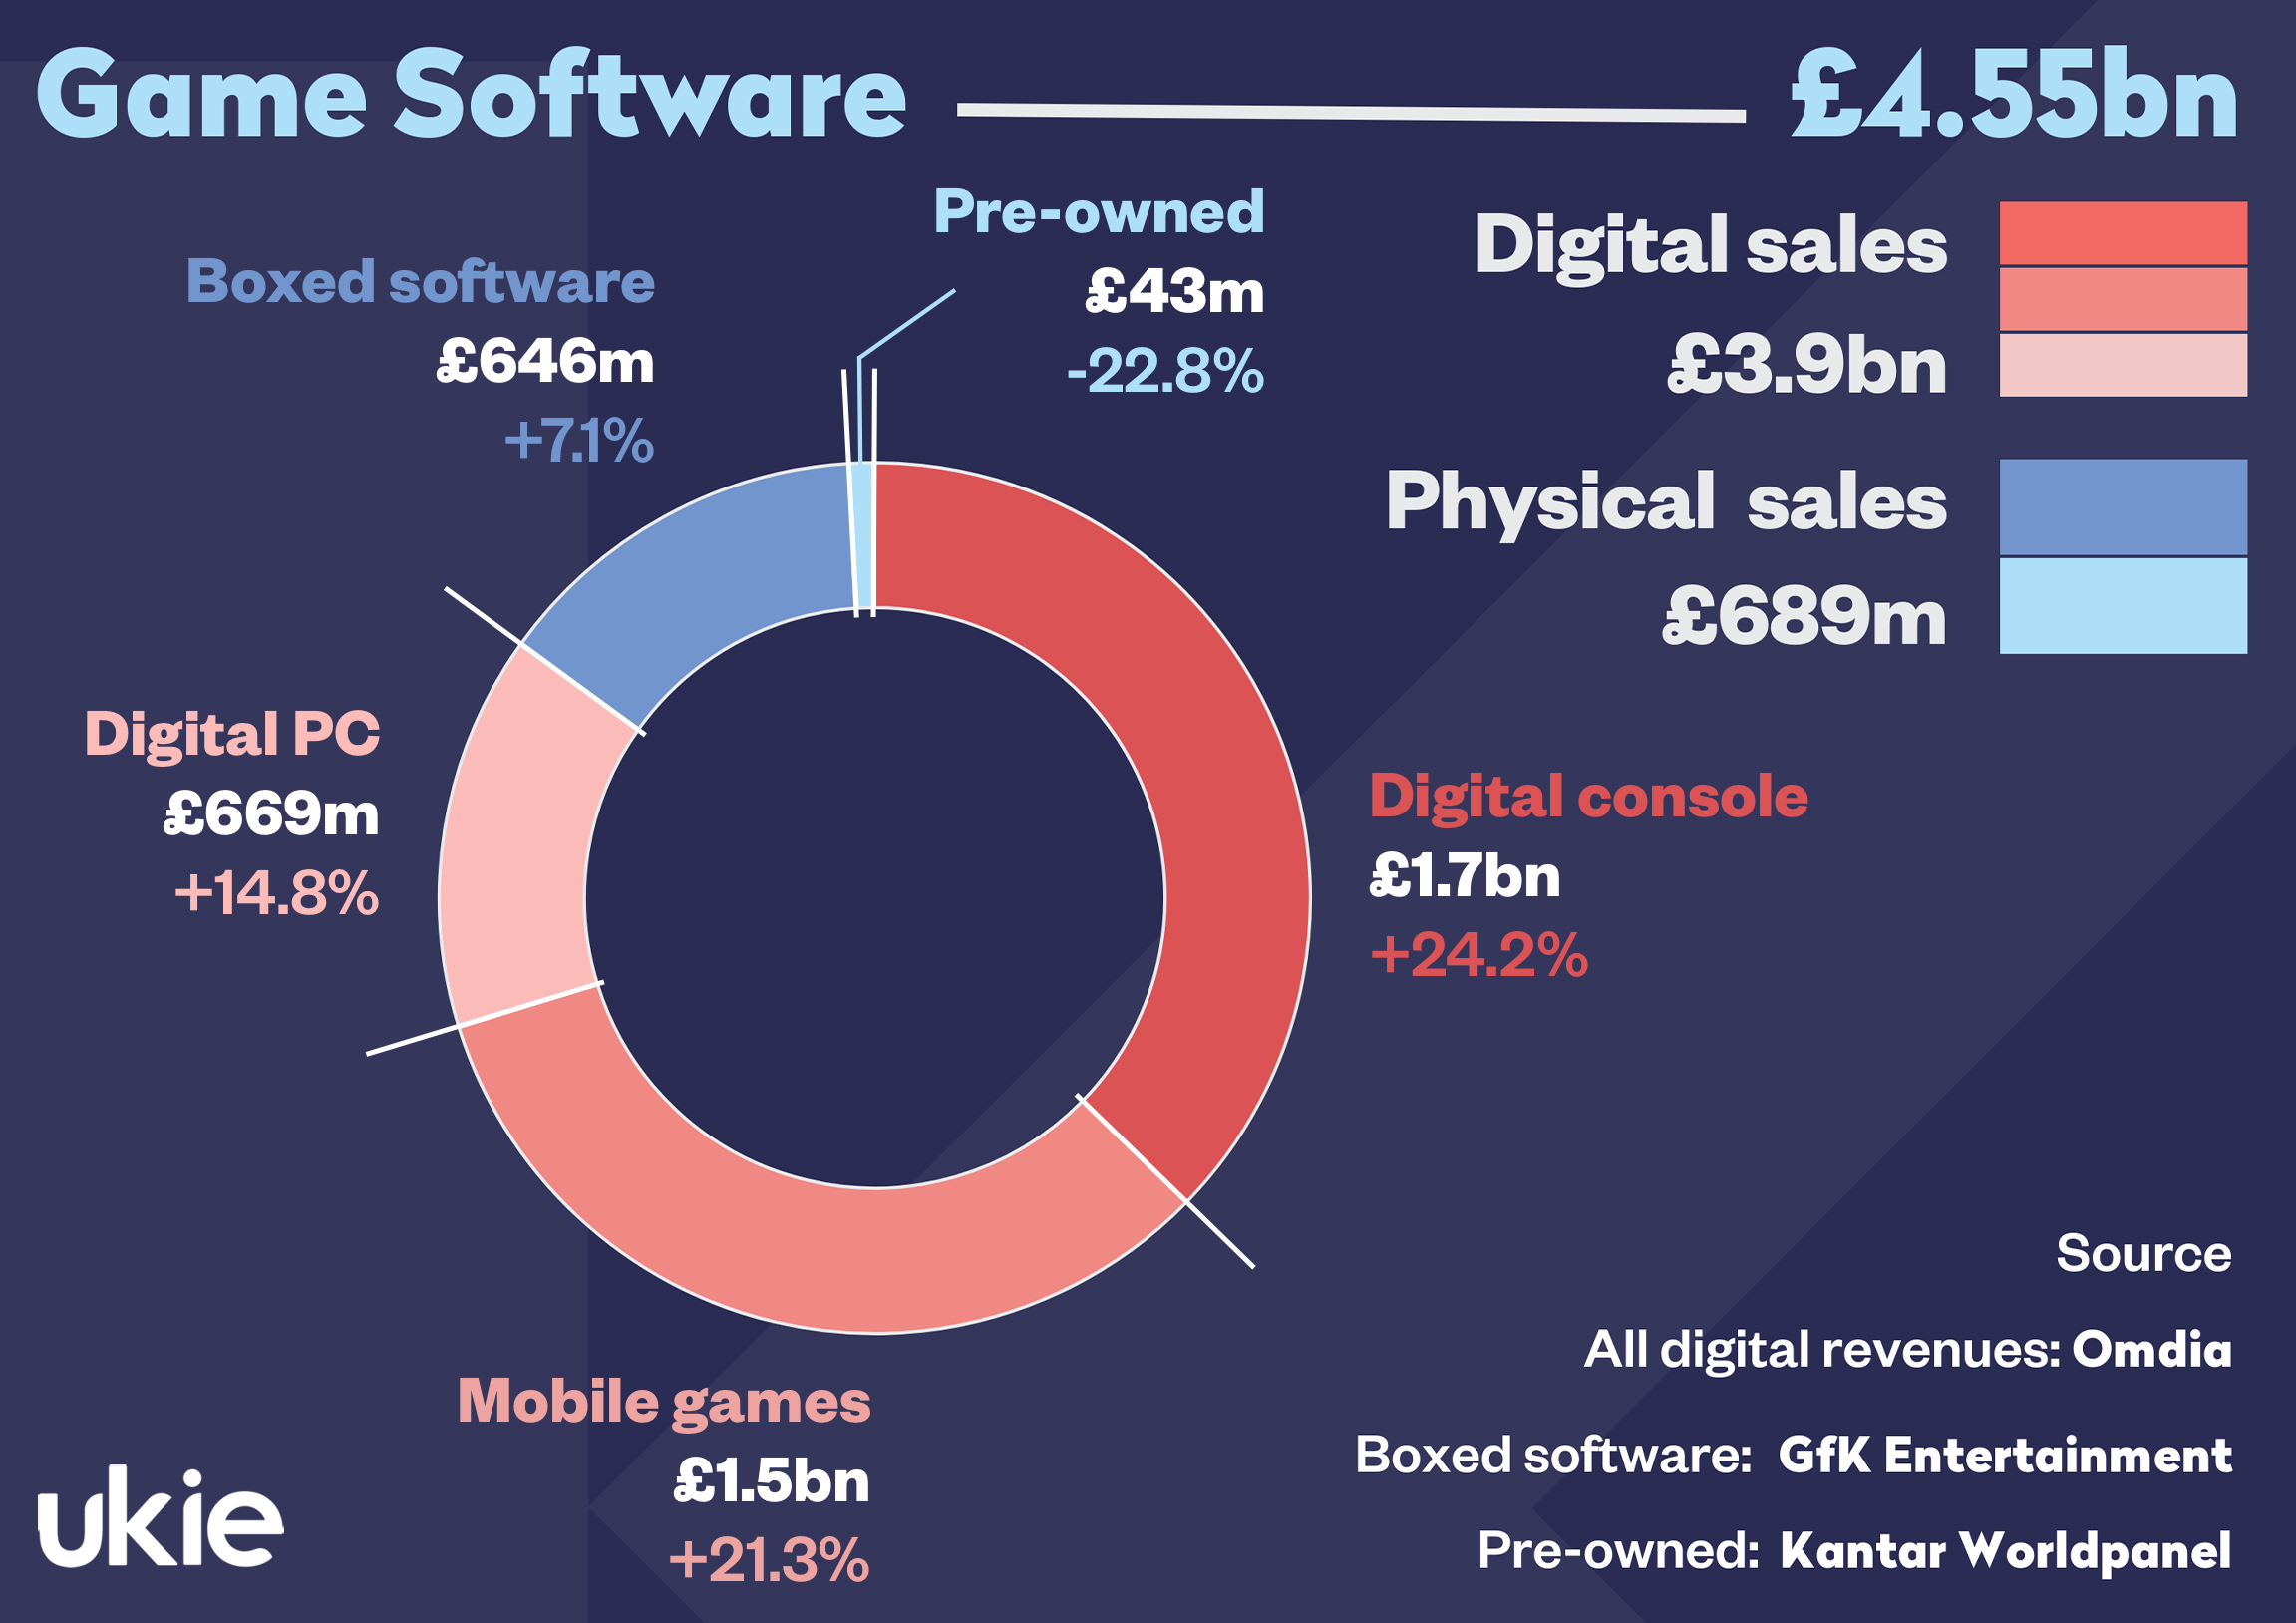 Game software revenues reached a record £4.55bn in 2020.